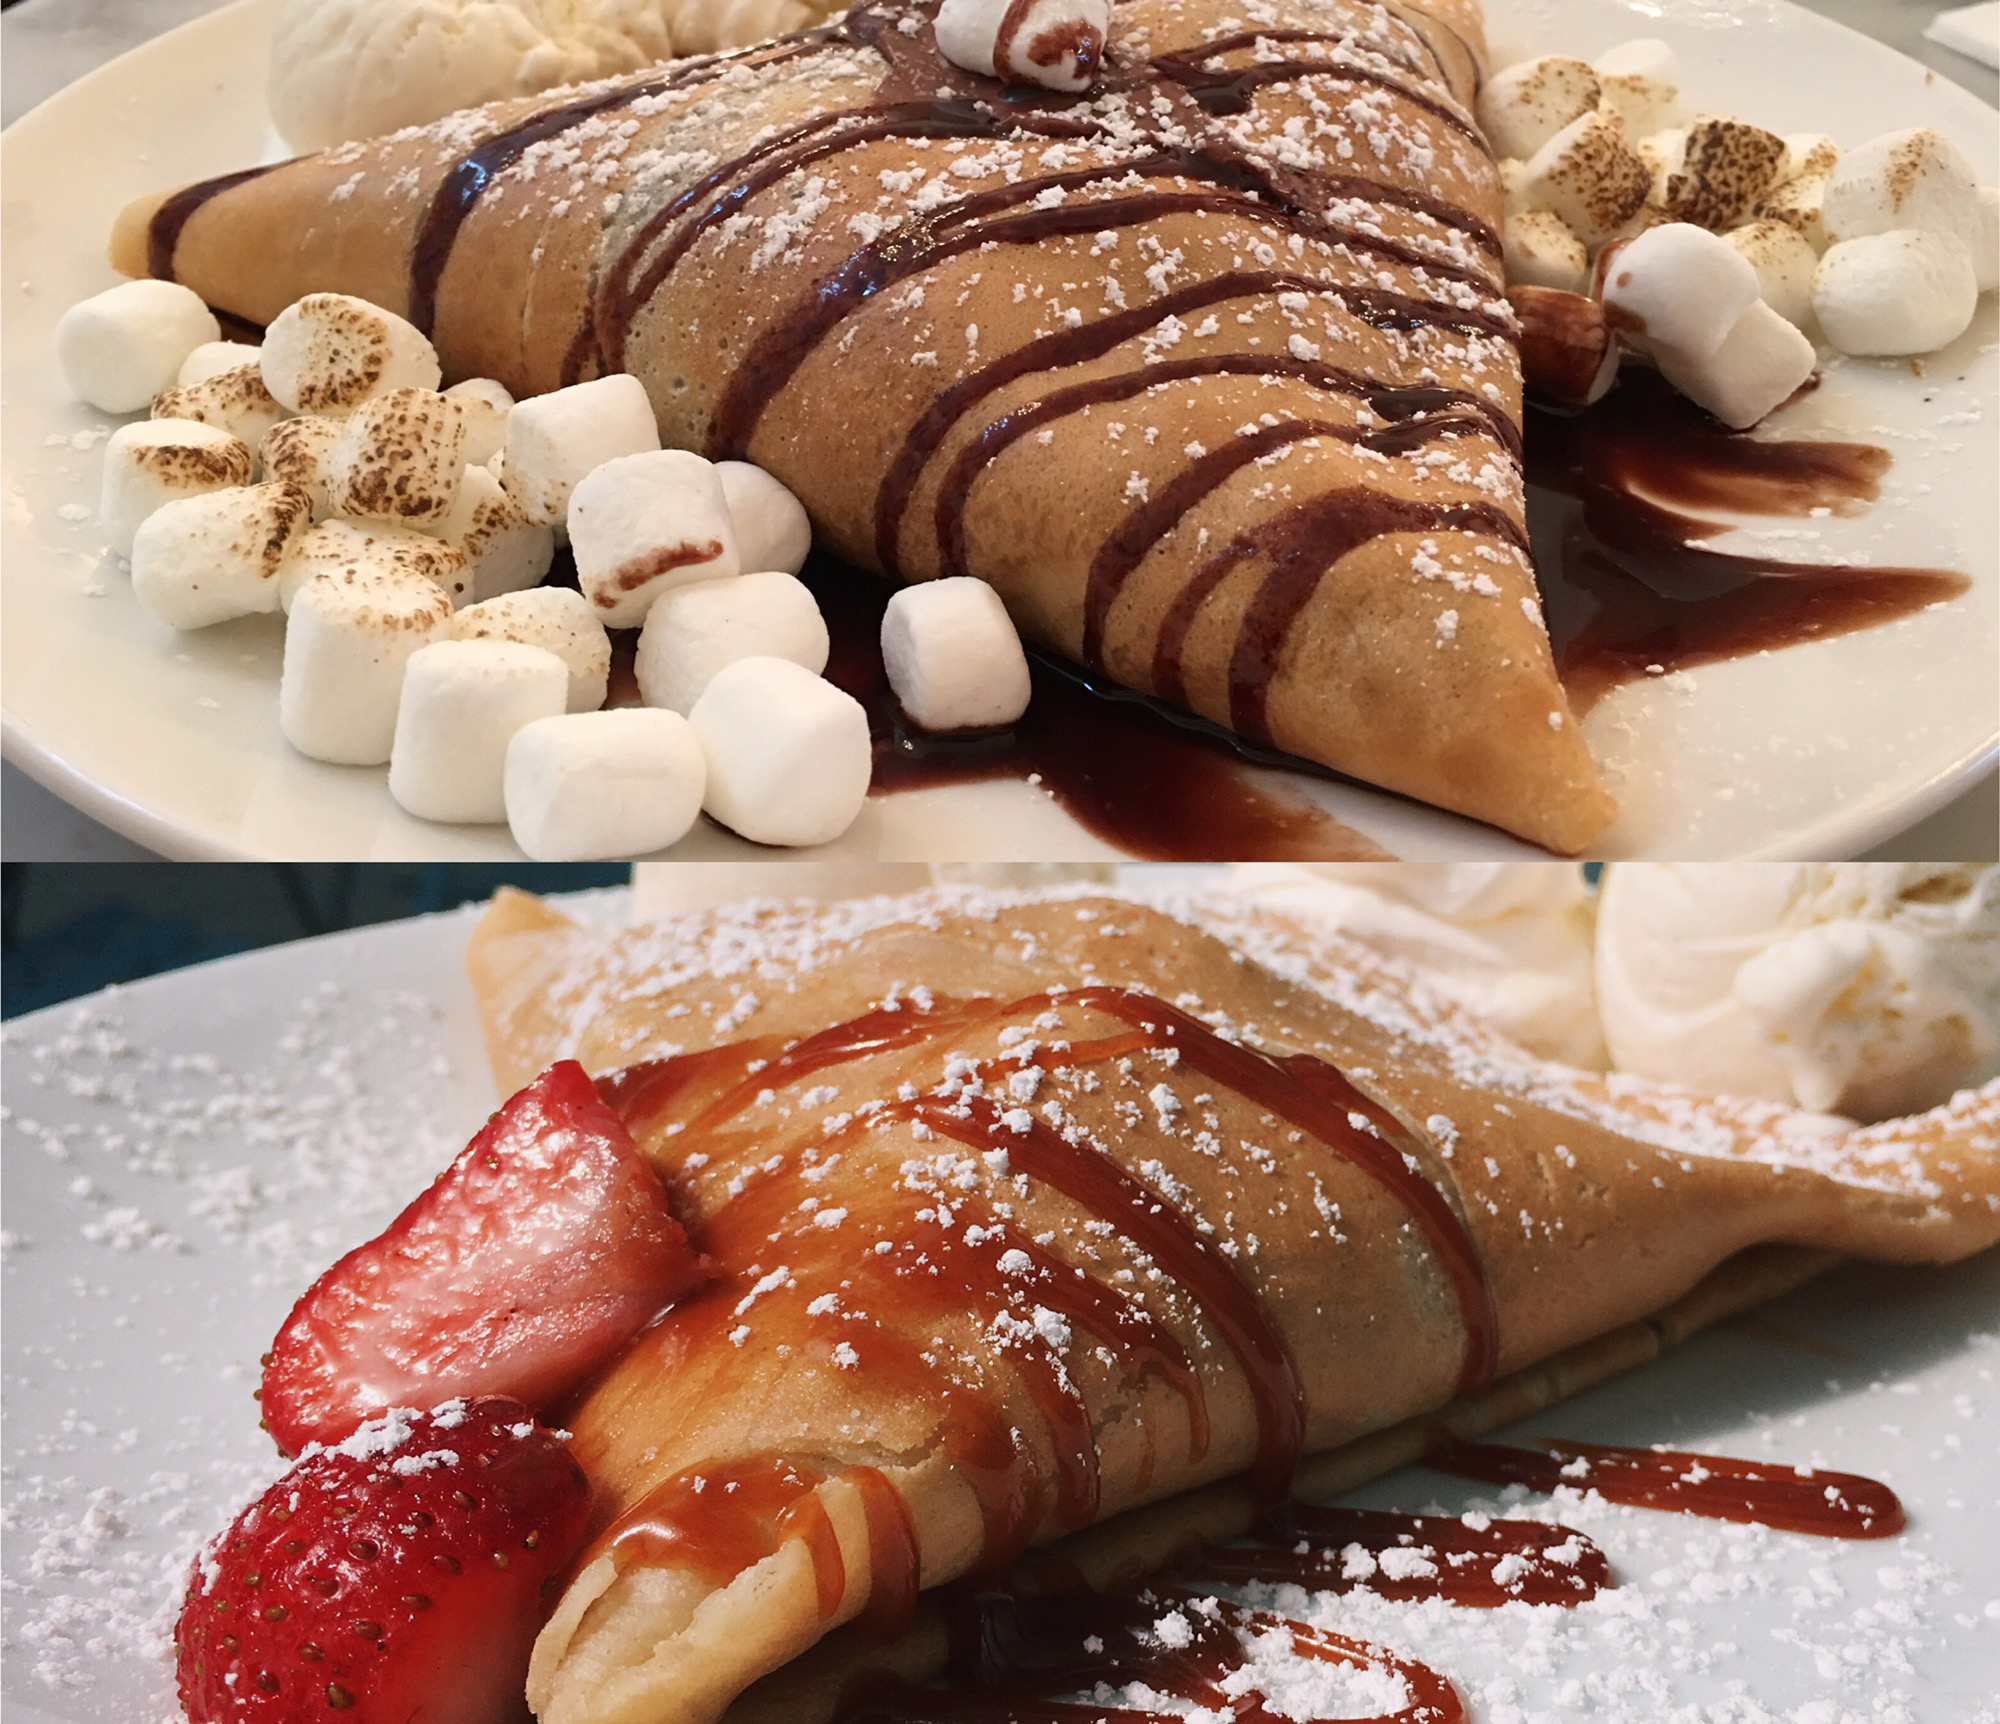 Sweet paris crepes s'mores crepe and dulce de leche crepe best crepes in houston with nutella and marshmallows